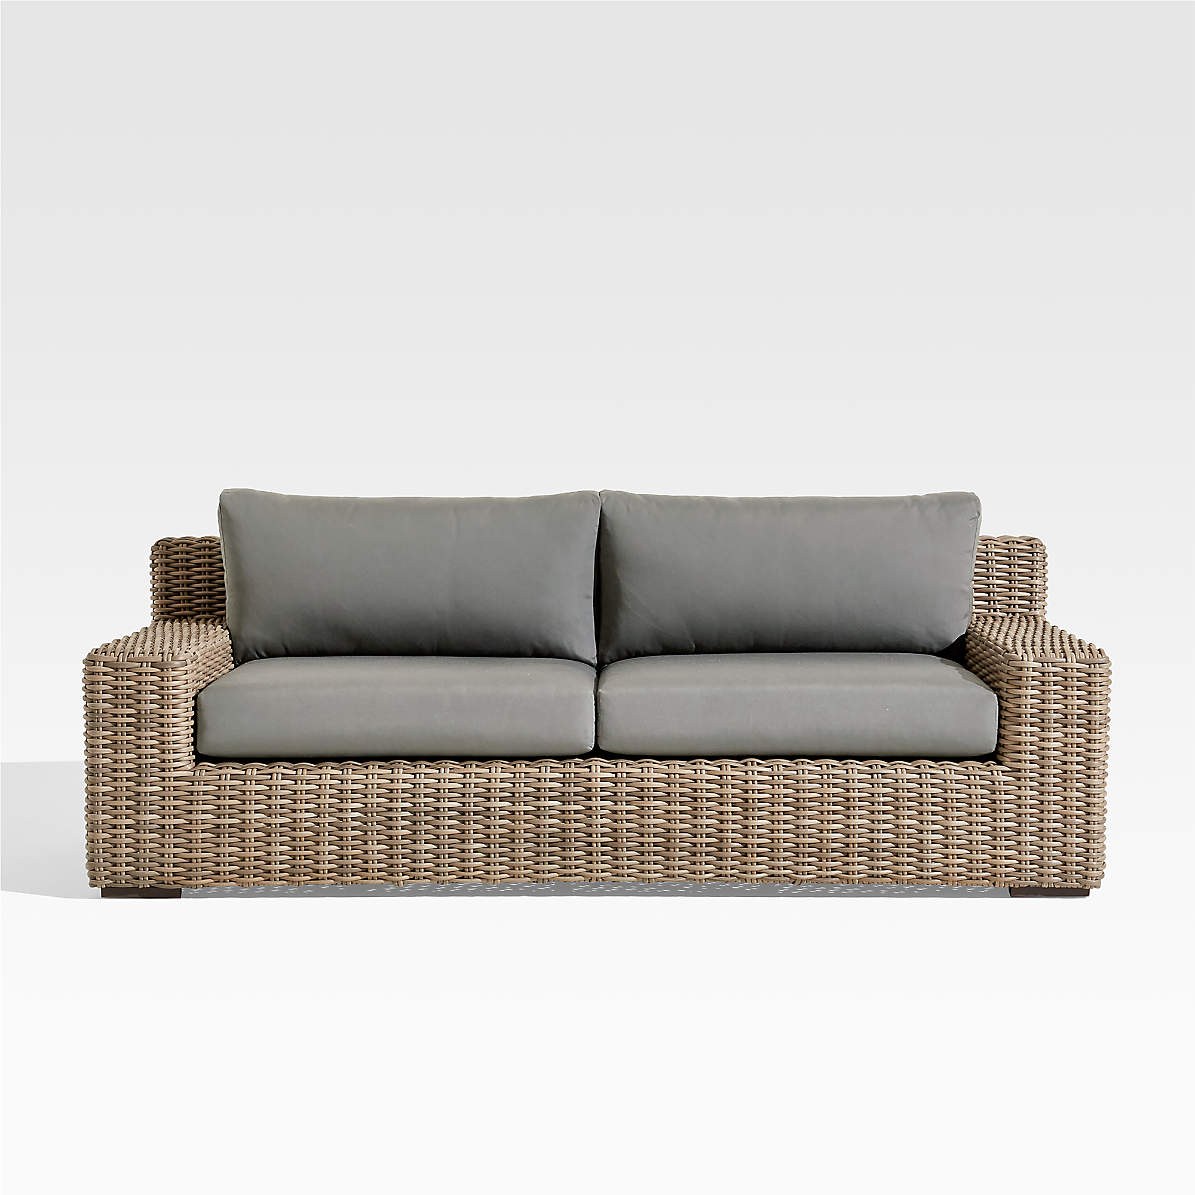 Abaco Outdoor Sofa With Graphite Sunbrella Cushions Reviews Crate And Barrel